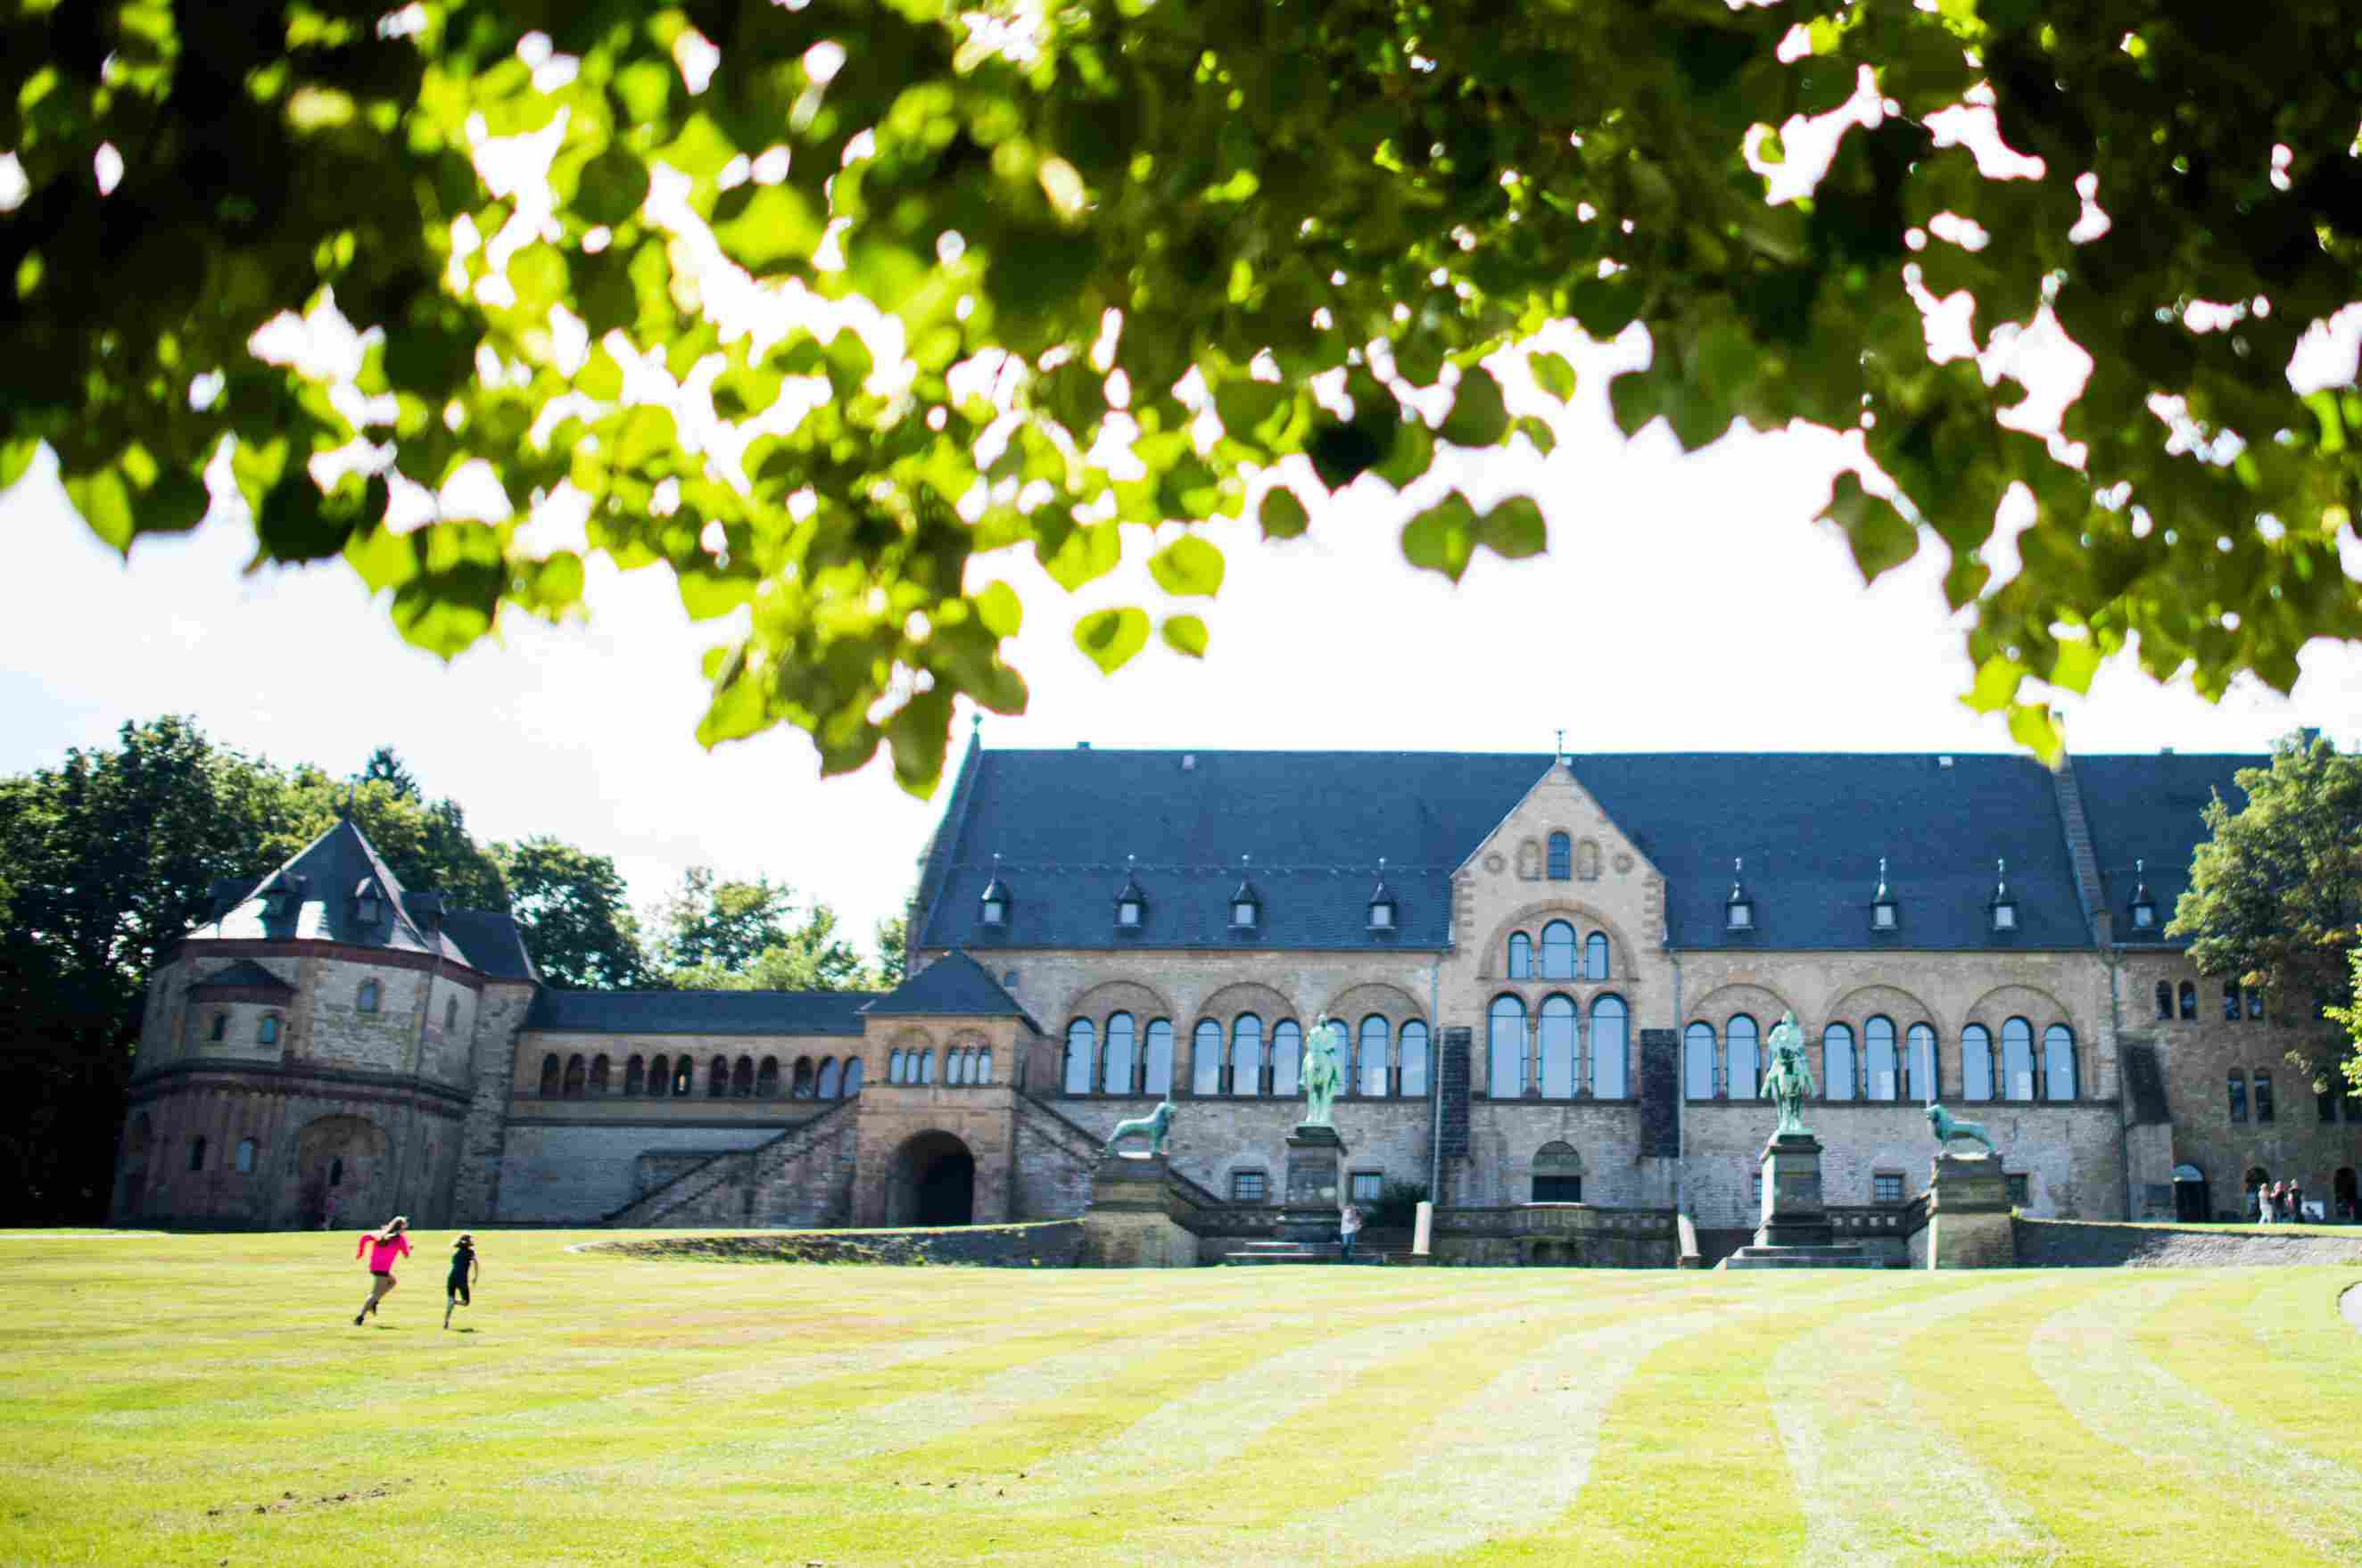 Secular Romanesque Kaiserpfalz Imperial Palace in Goslar, Germany, Built in 1050 AD